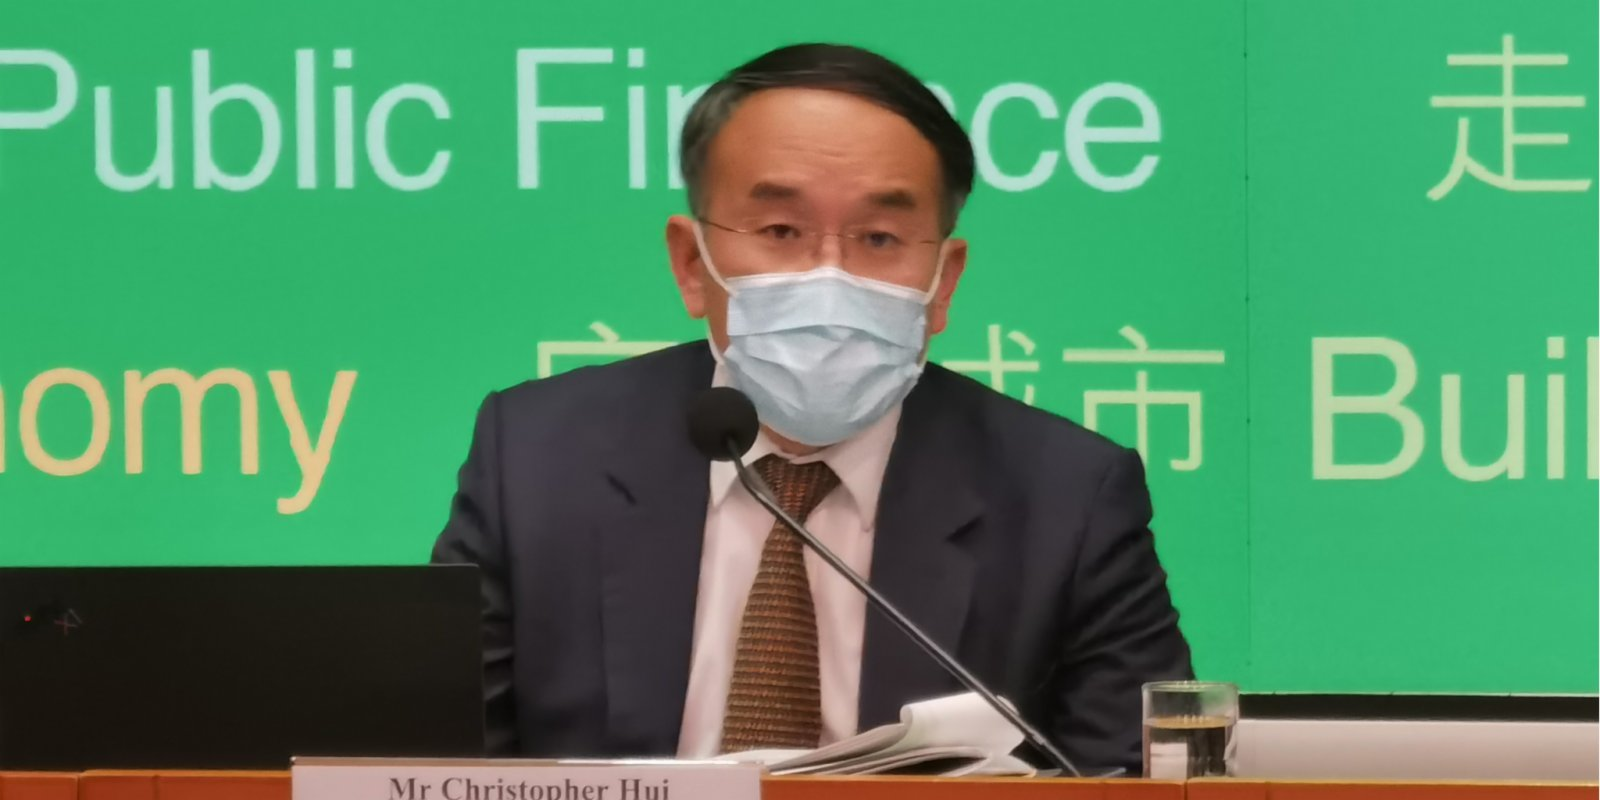 HK's financial system remains smooth operation despite COVID-19: Govt official